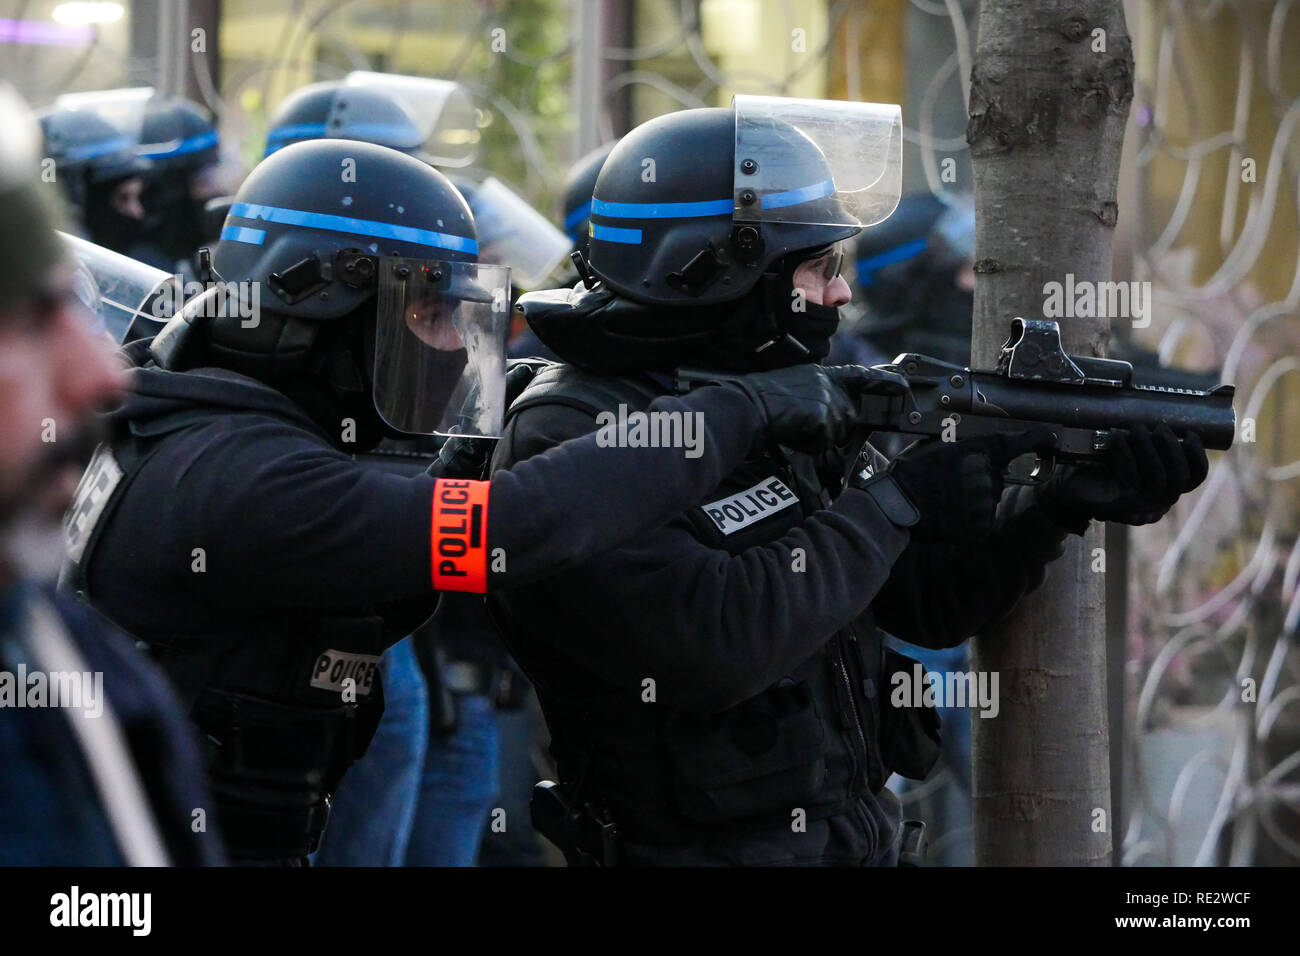 Lyon, France, January 19th 2019: Anti-Criminalty Brigade (BAC) officers use LBD40 less lethal gun (also called Flashball) to push back Yellow jackets yellow jackets as they take part to the 10th day of protest against french goverment reform projetct in Lyon (Central-Eastern France) on january 19, 2019. Credit Photo: Serge Mouraret/Alamy Live News - Stock Image